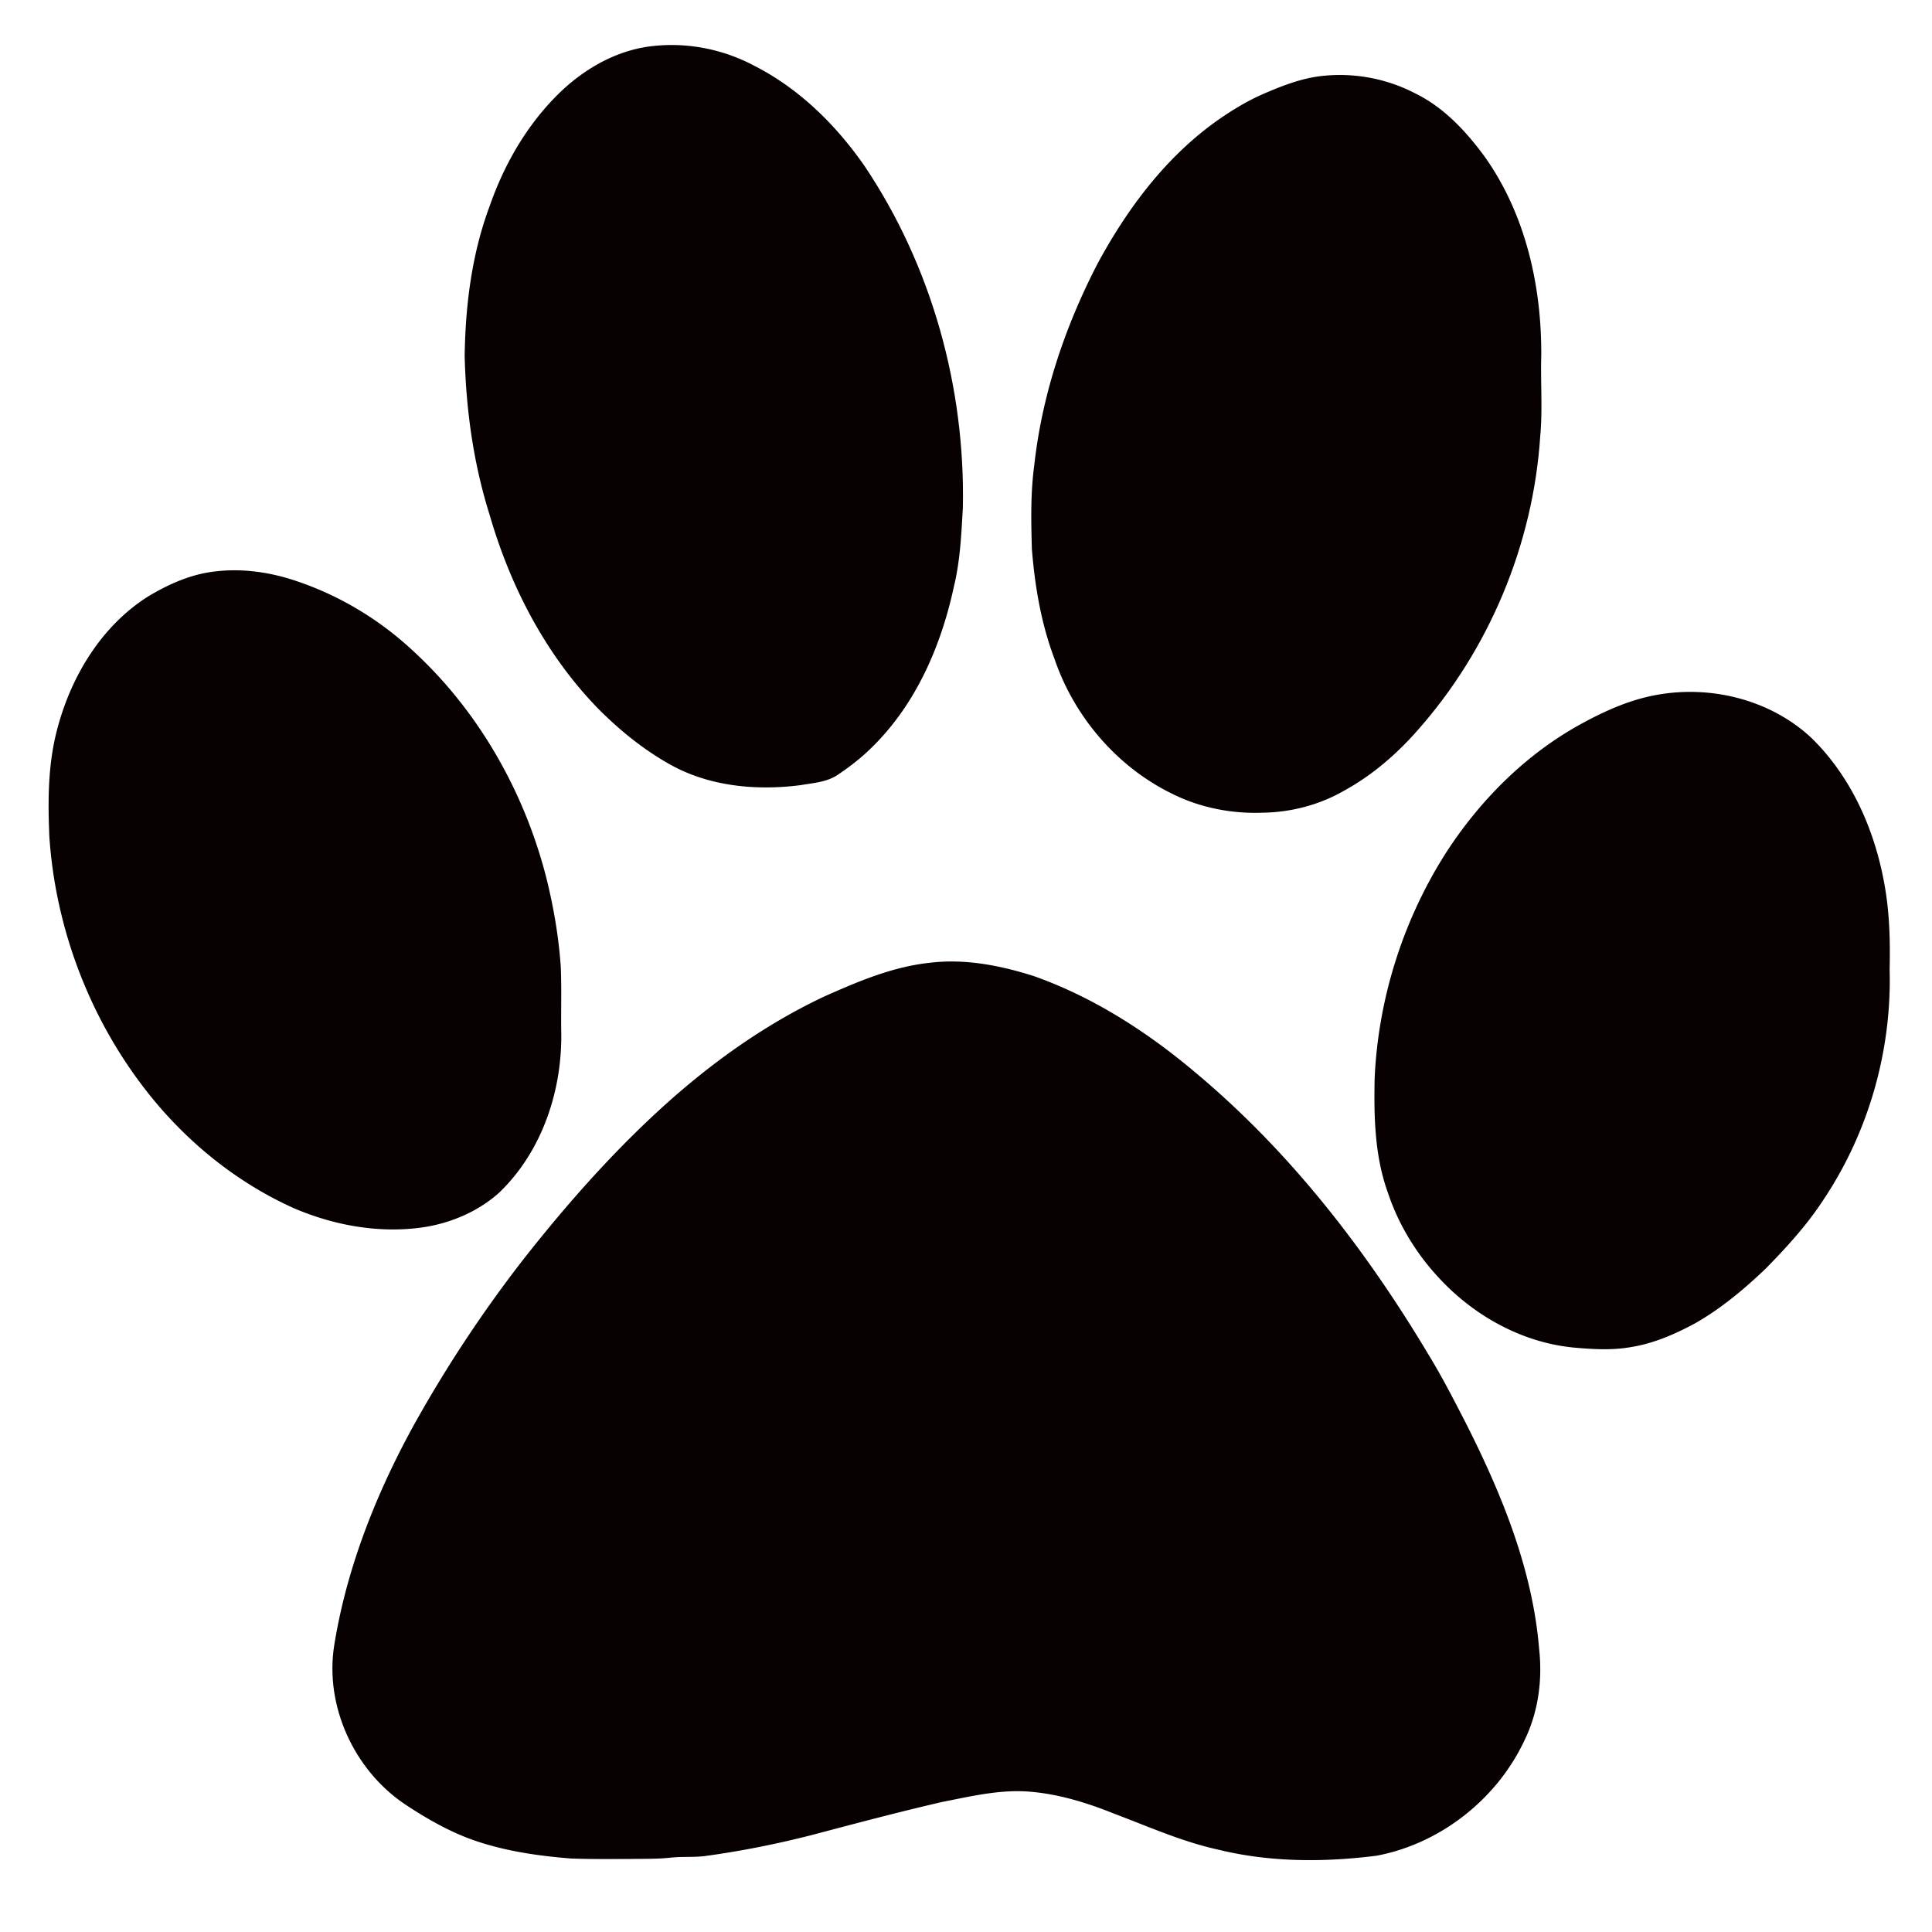 Free paw print clip art clipart images gallery for free.